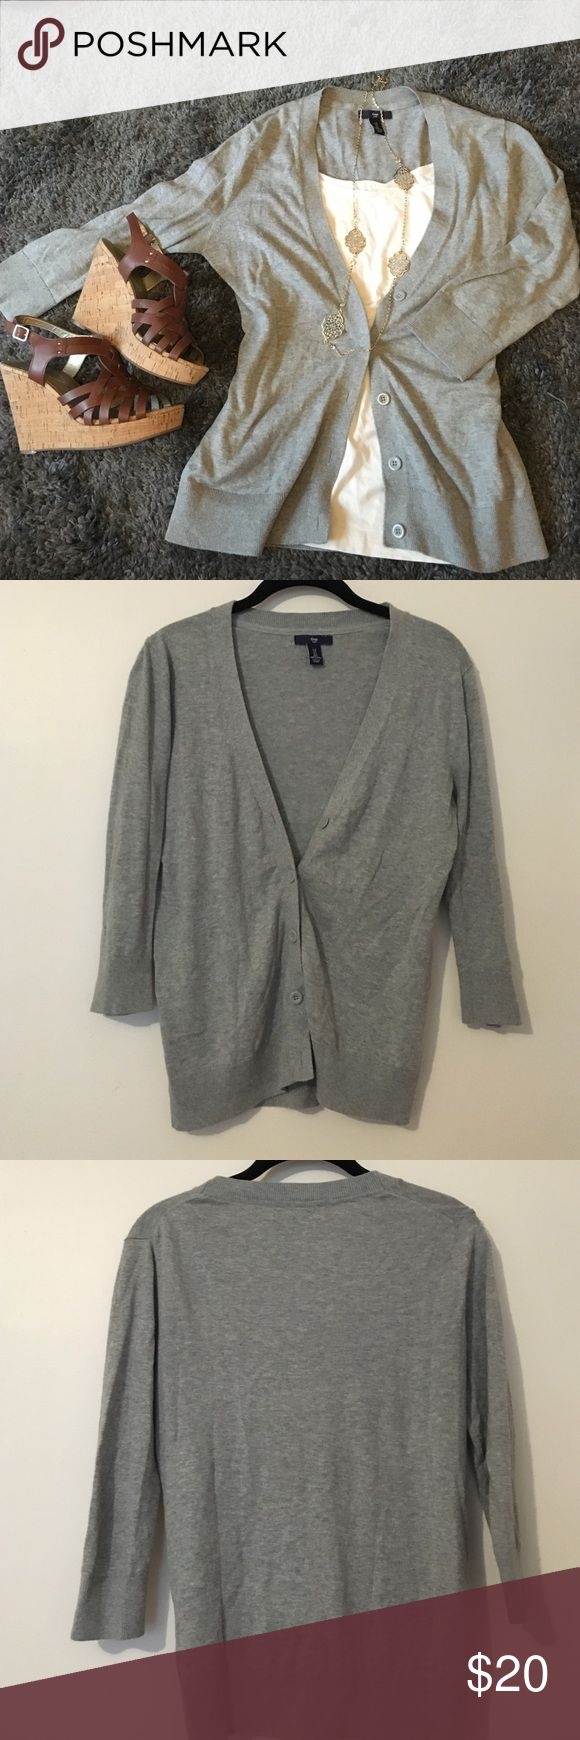 Grey cardigan Channel your inner Taylor Swift with a classic grey cardigan! Perfect to pair with any outfit and insanely comfortable, this cardigan is great for all seasons! GAP Sweaters Cardigans